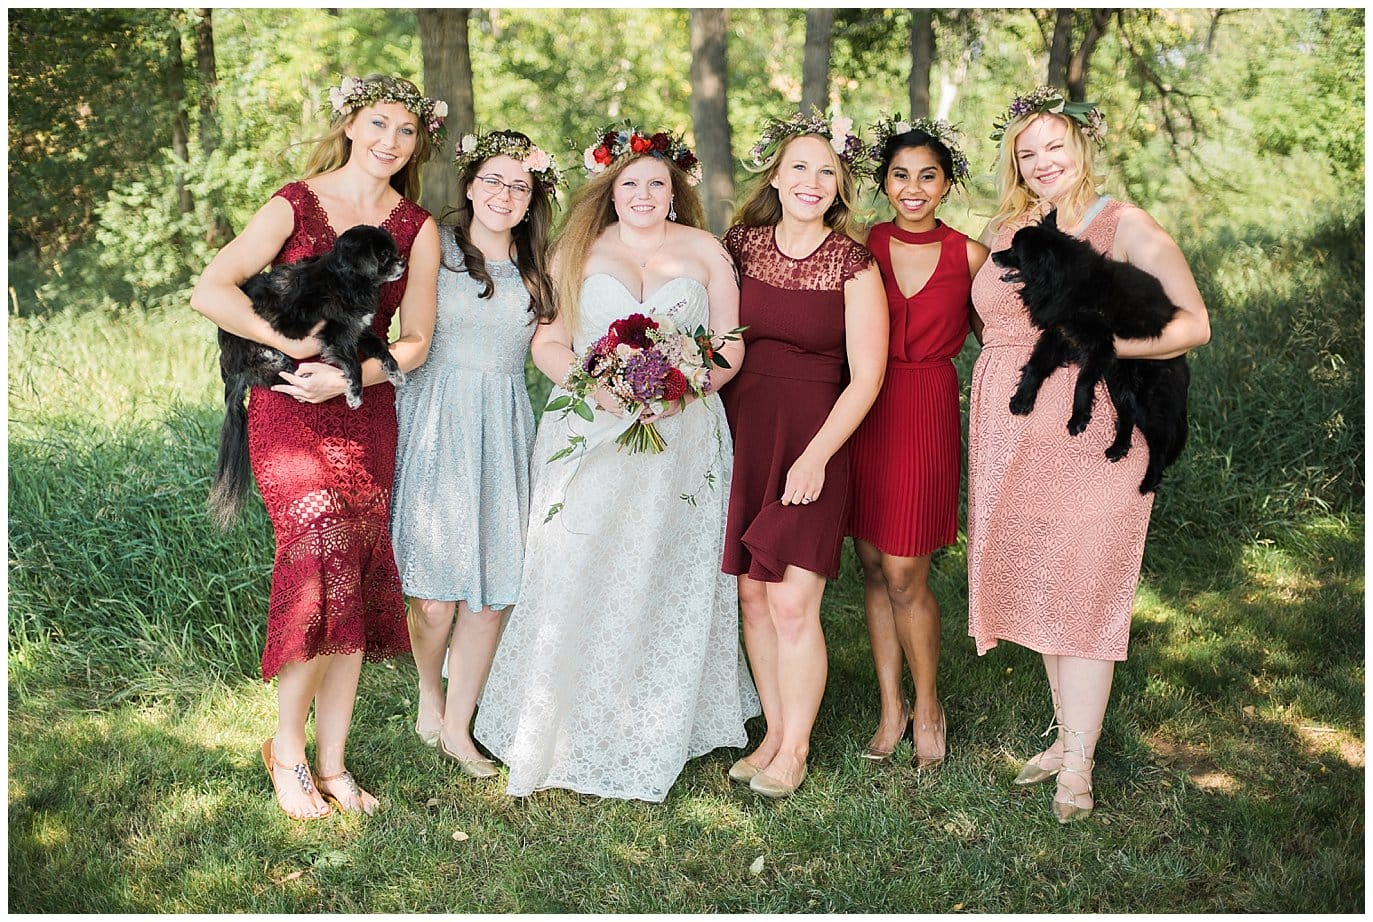 Boho Bride and bridemaids in shades of pin and red photo